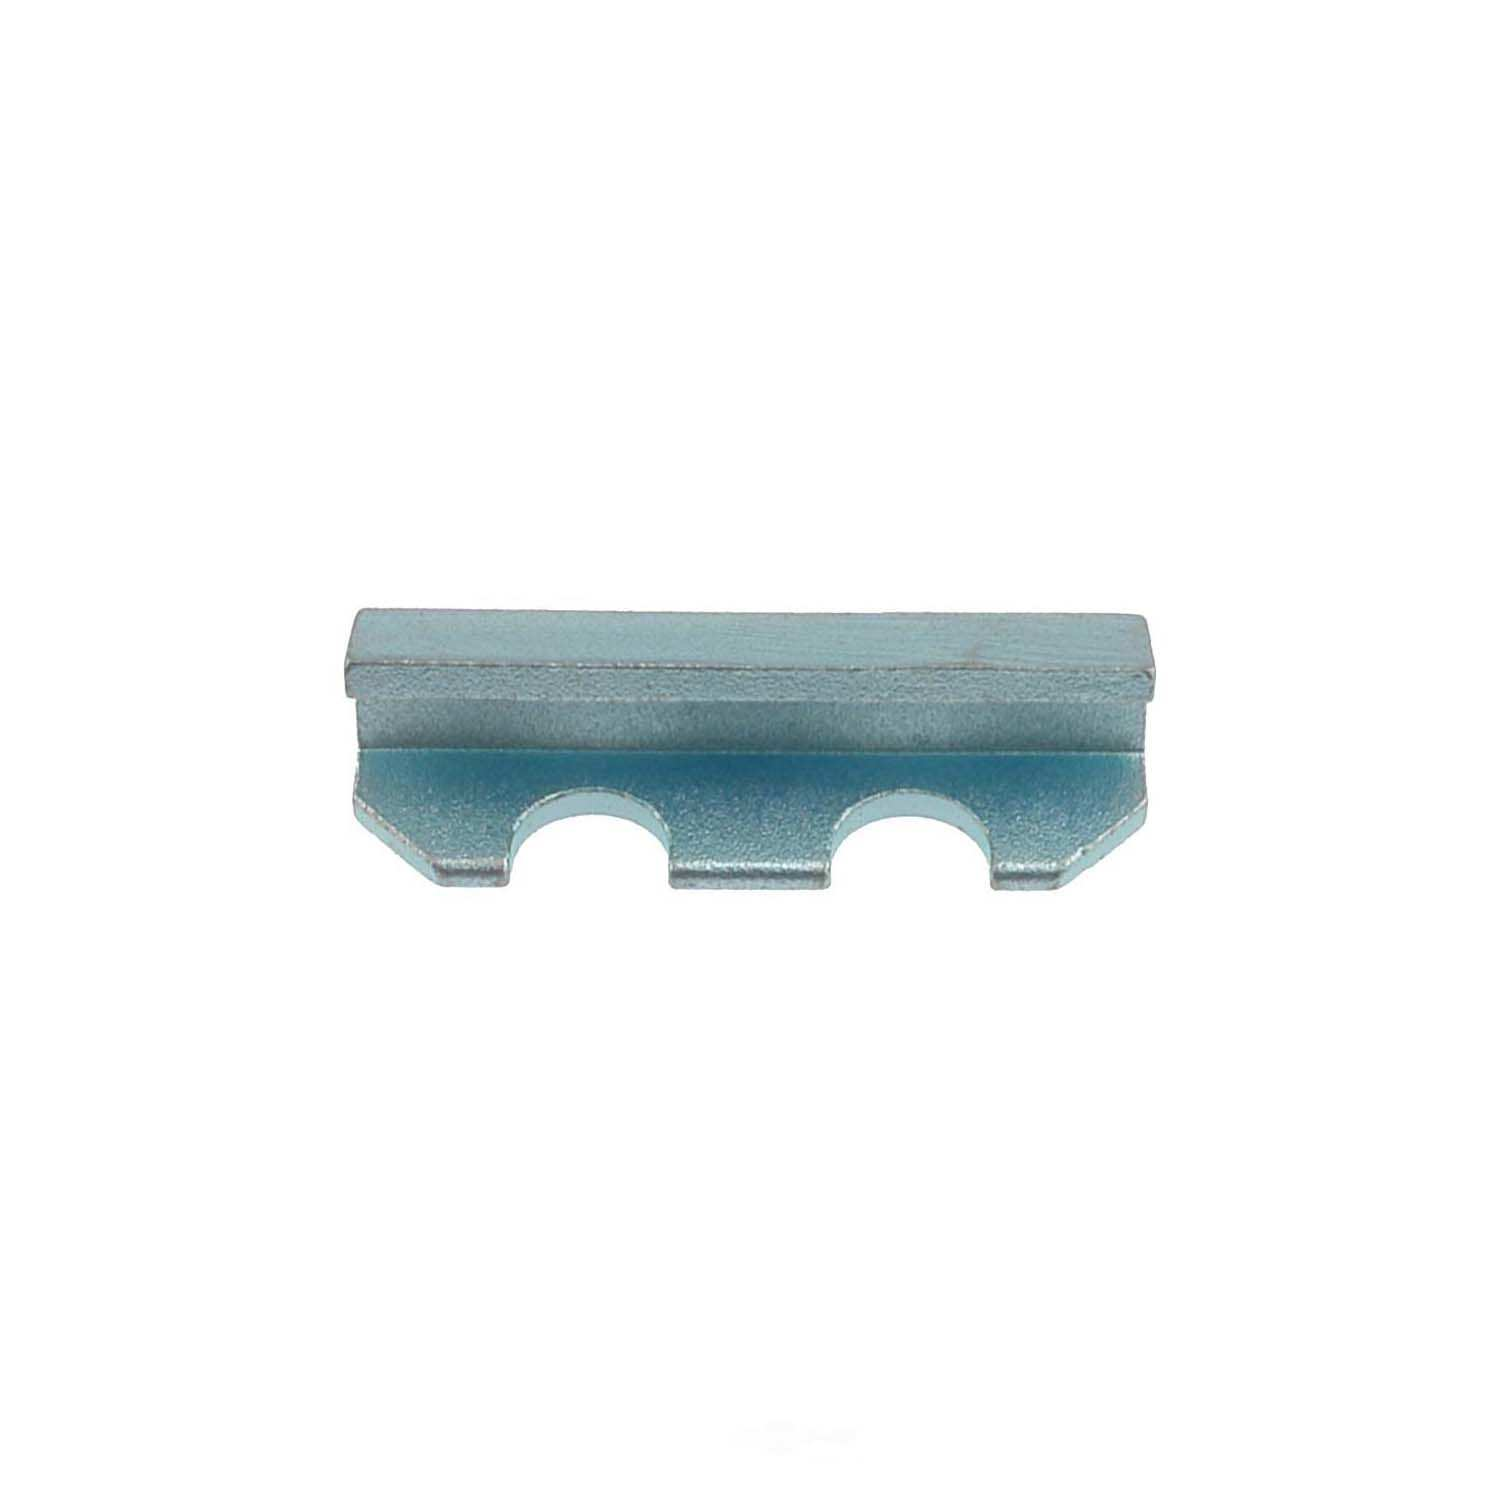 CARLSON QUALITY BRAKE PARTS - Disc Brake Caliper Support Key - CRL H5302-2